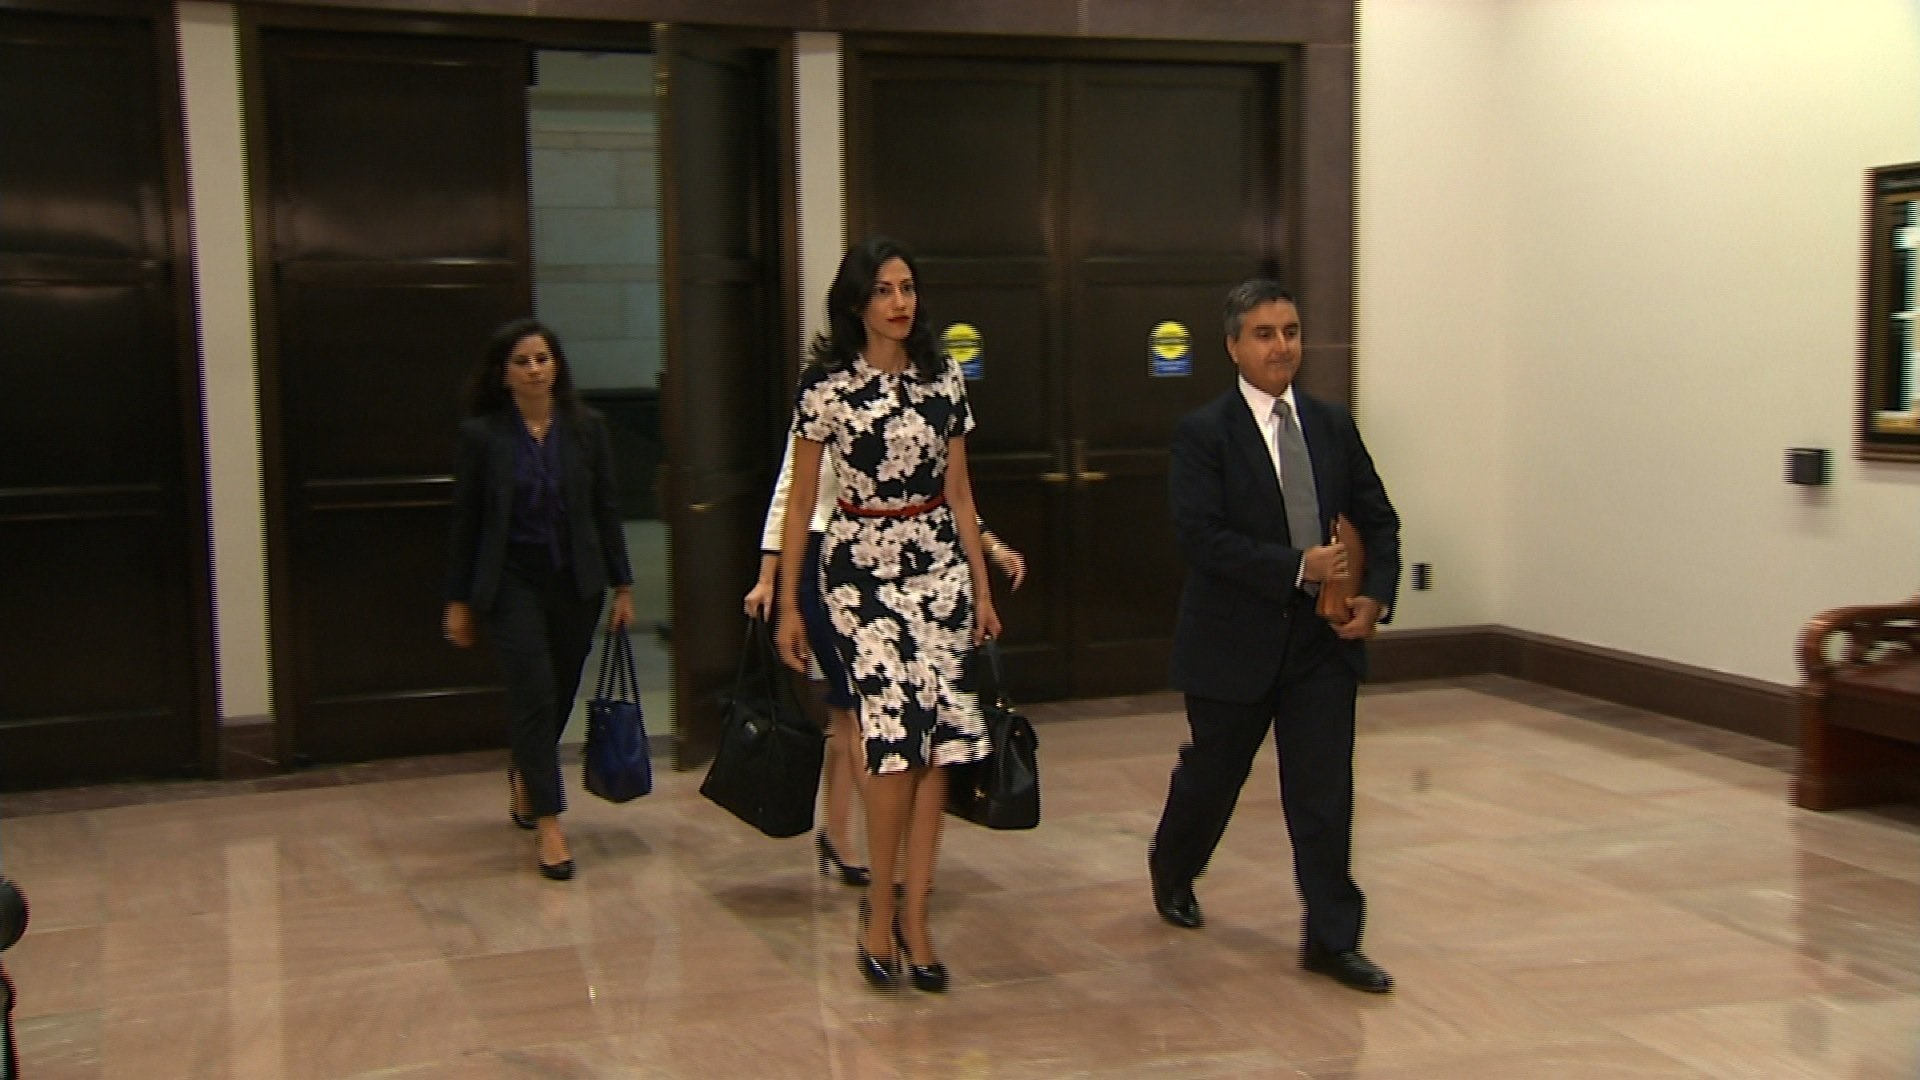 Fact Checker: Does Huma Abedin have 'ties' to the Muslim Brotherhood?